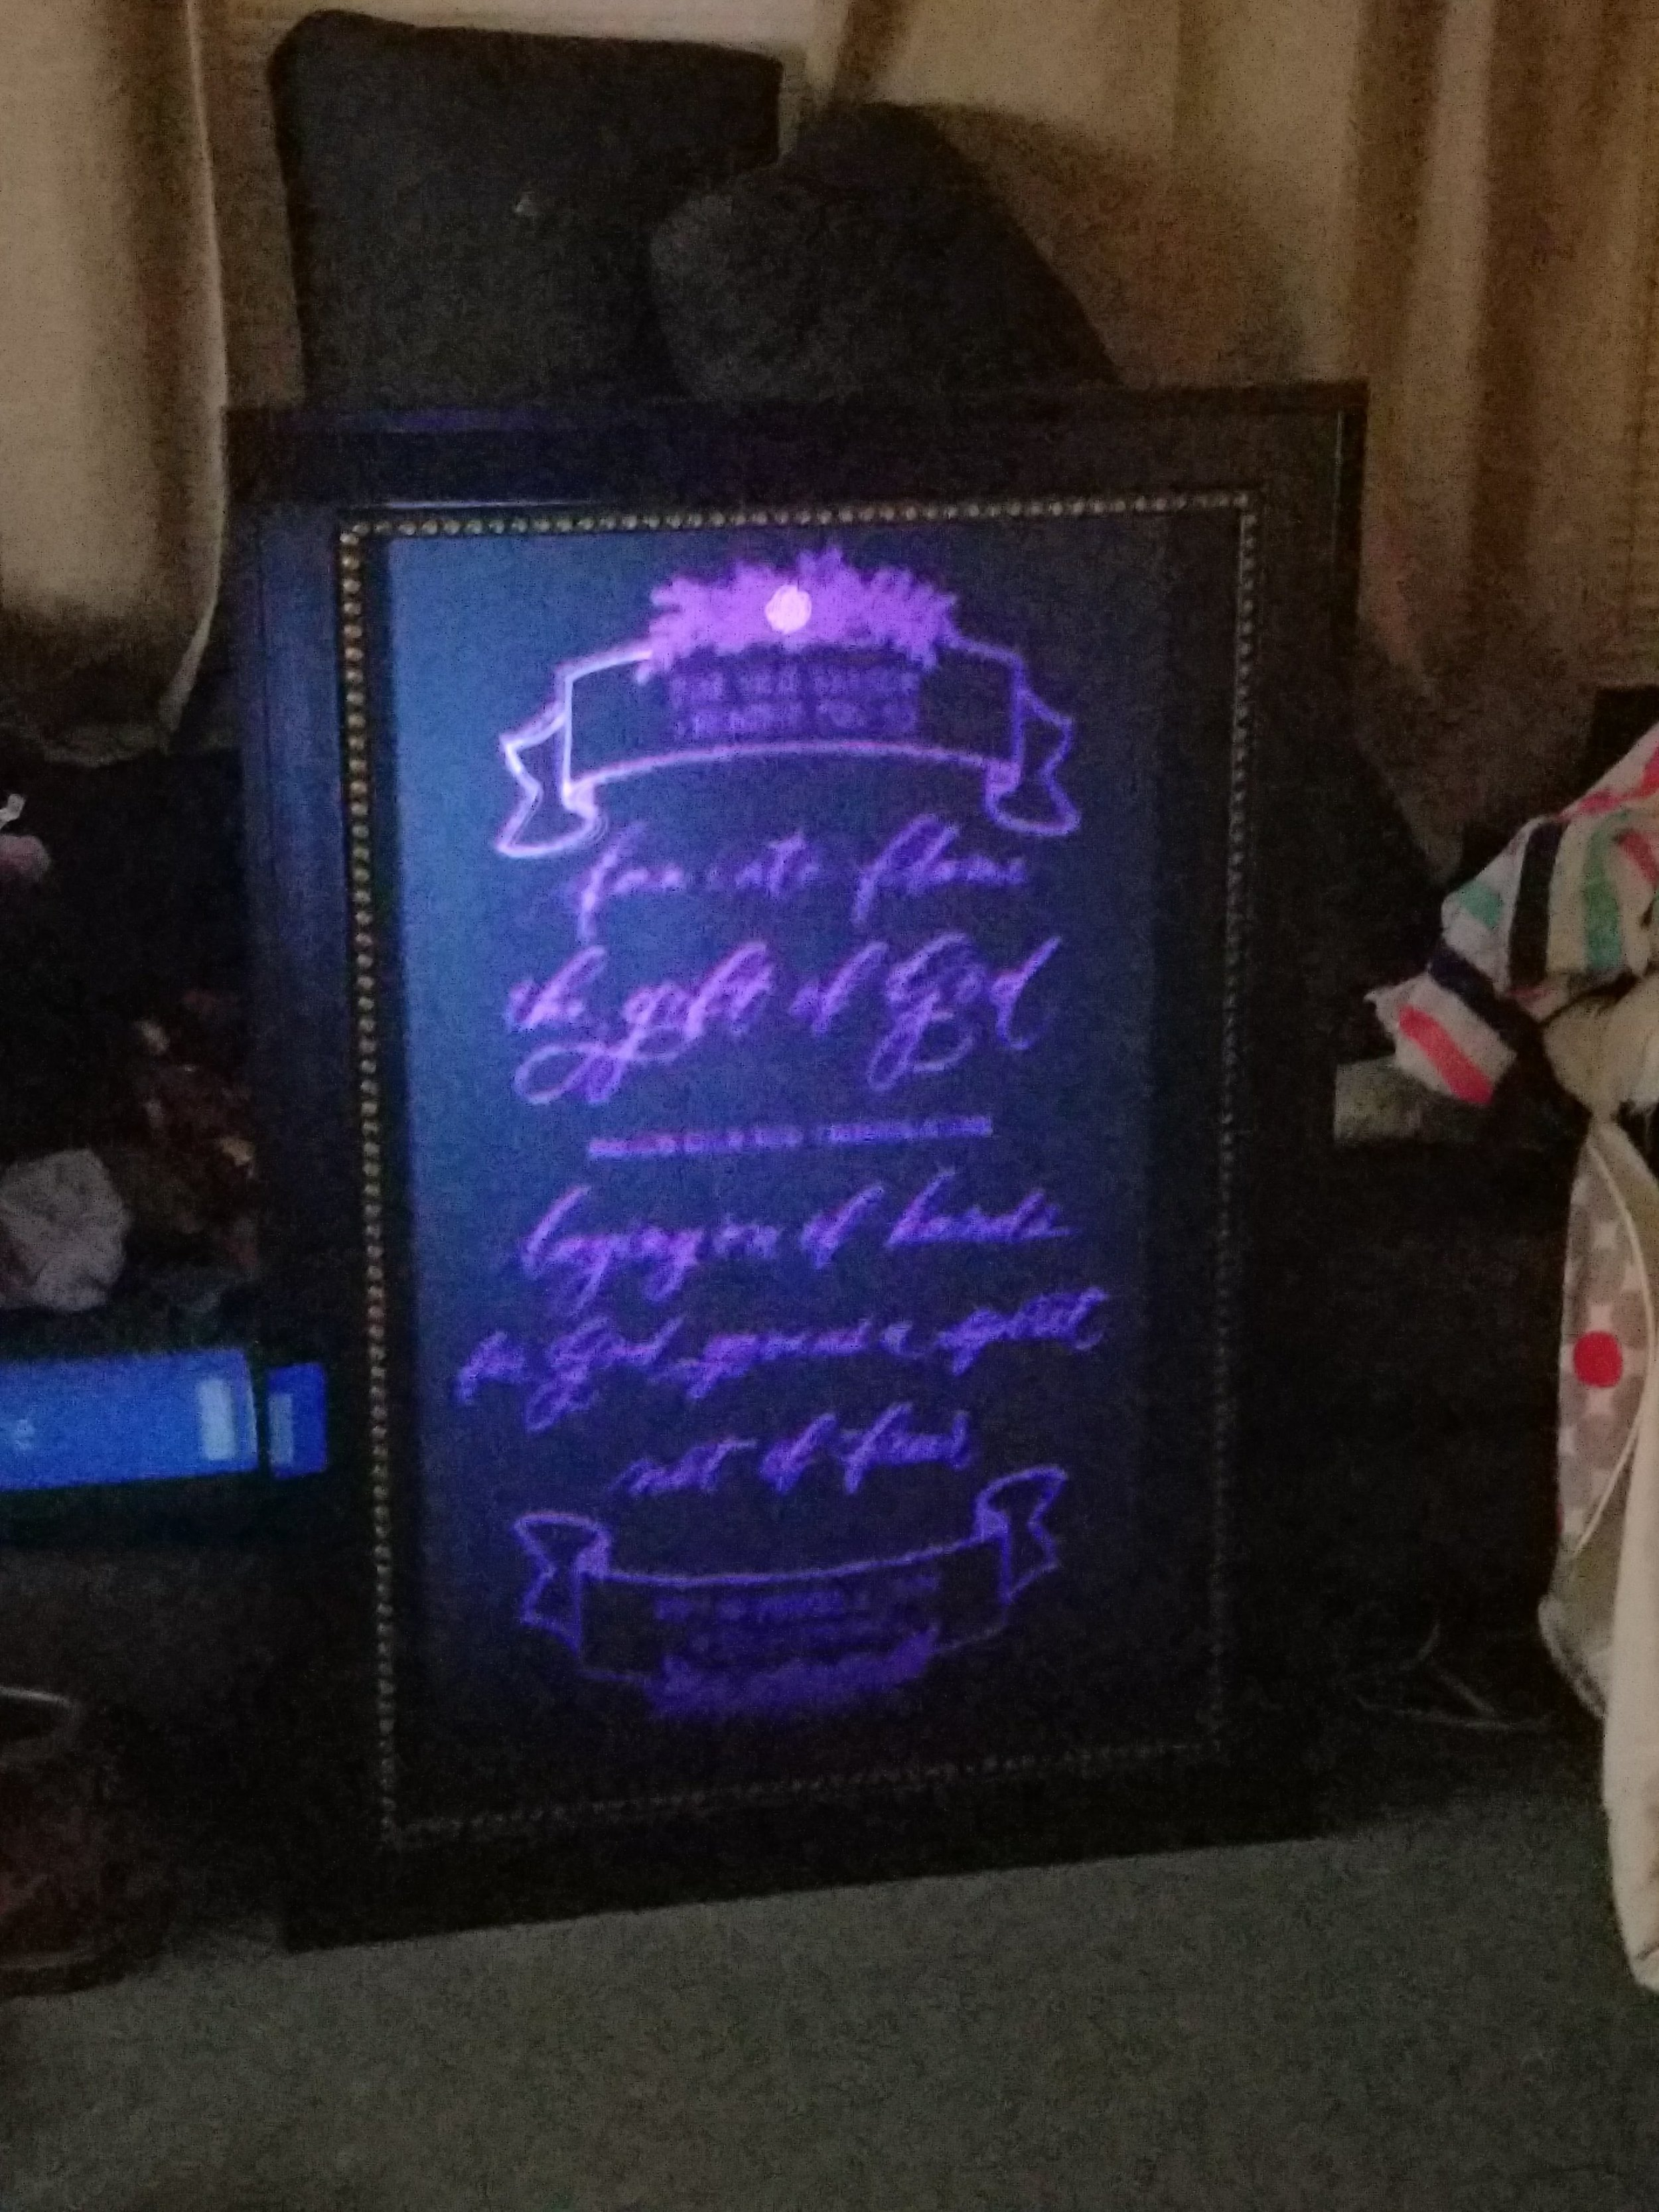 How-To: Chalkboard Lettering Step-by-Step